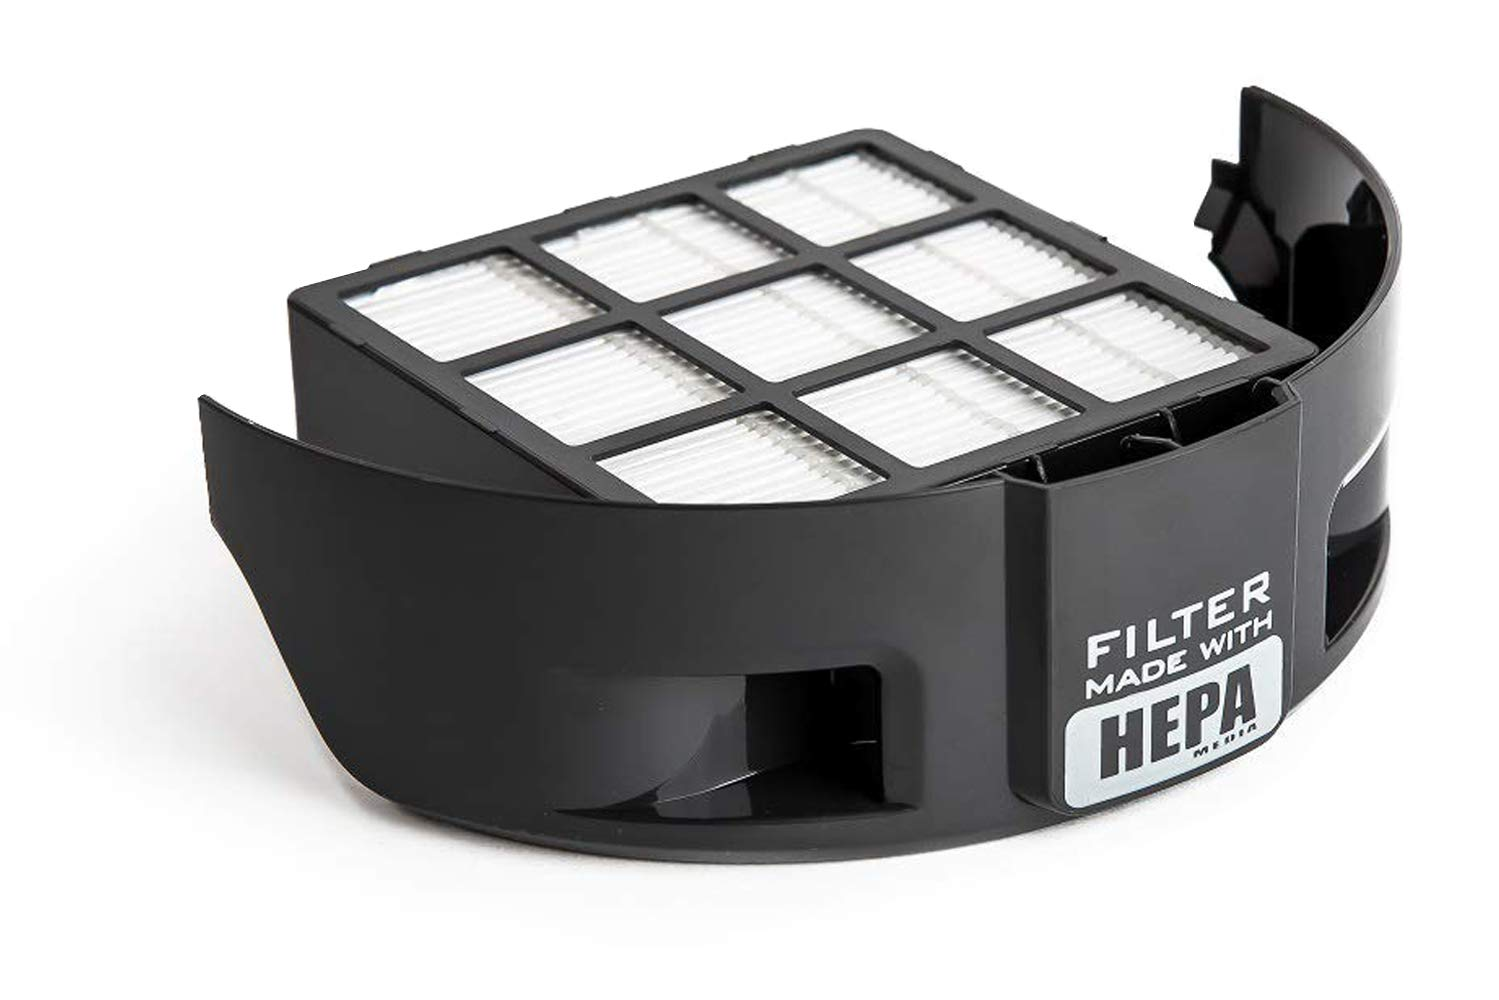 Green Label Exhaust HEPA Filter for Hoover T Series Windtunnel Vacuum Cleaners (compares to 303172001)